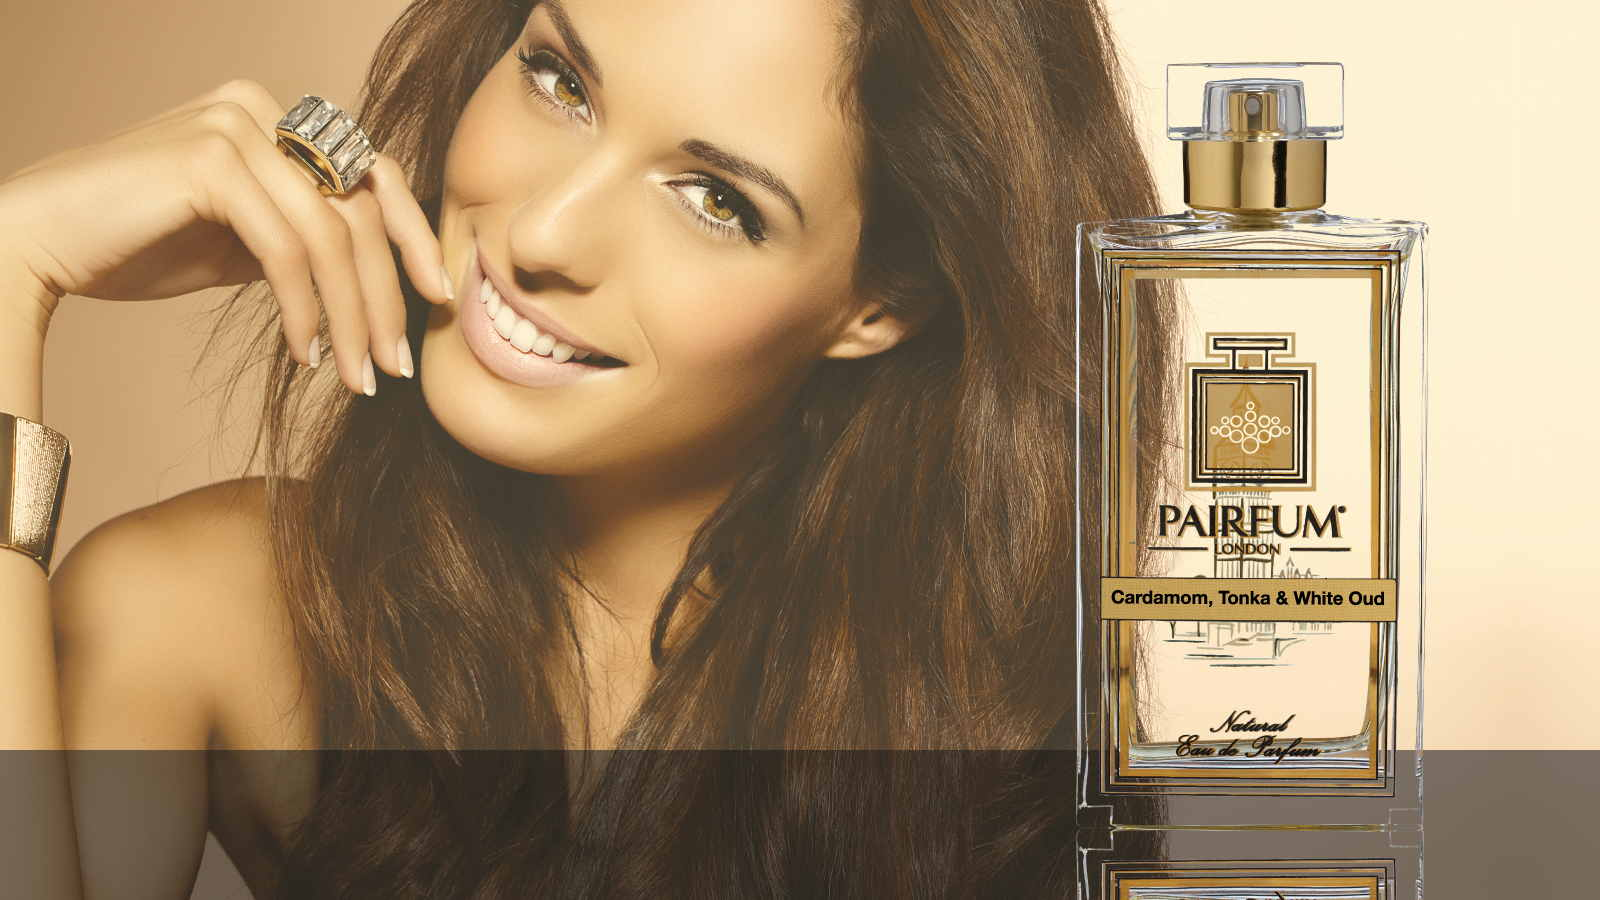 Eau De Parfum Person Reflection Cardamom Tonka White Oud Woman 16 9